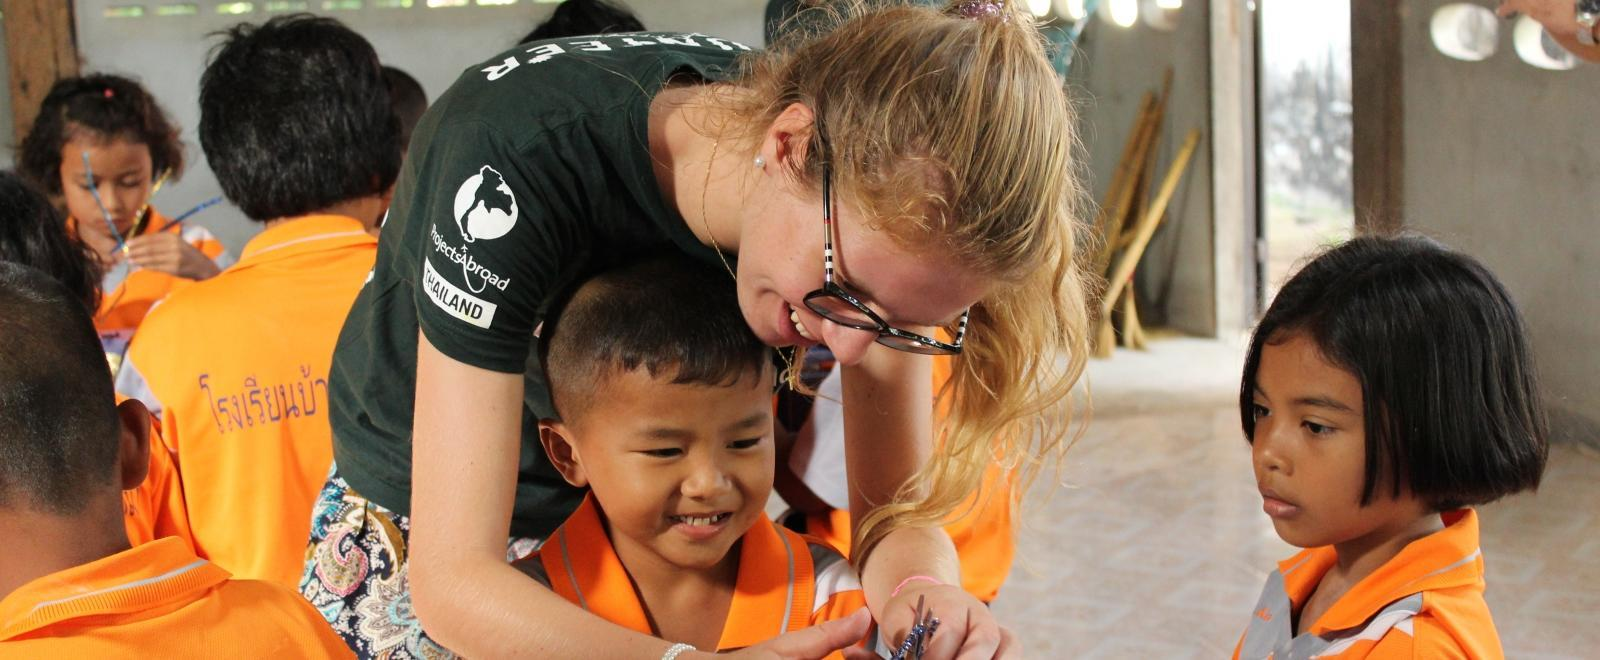 A Projects Abroad volunteer who works with children enjoys her volunteer placements abroad.